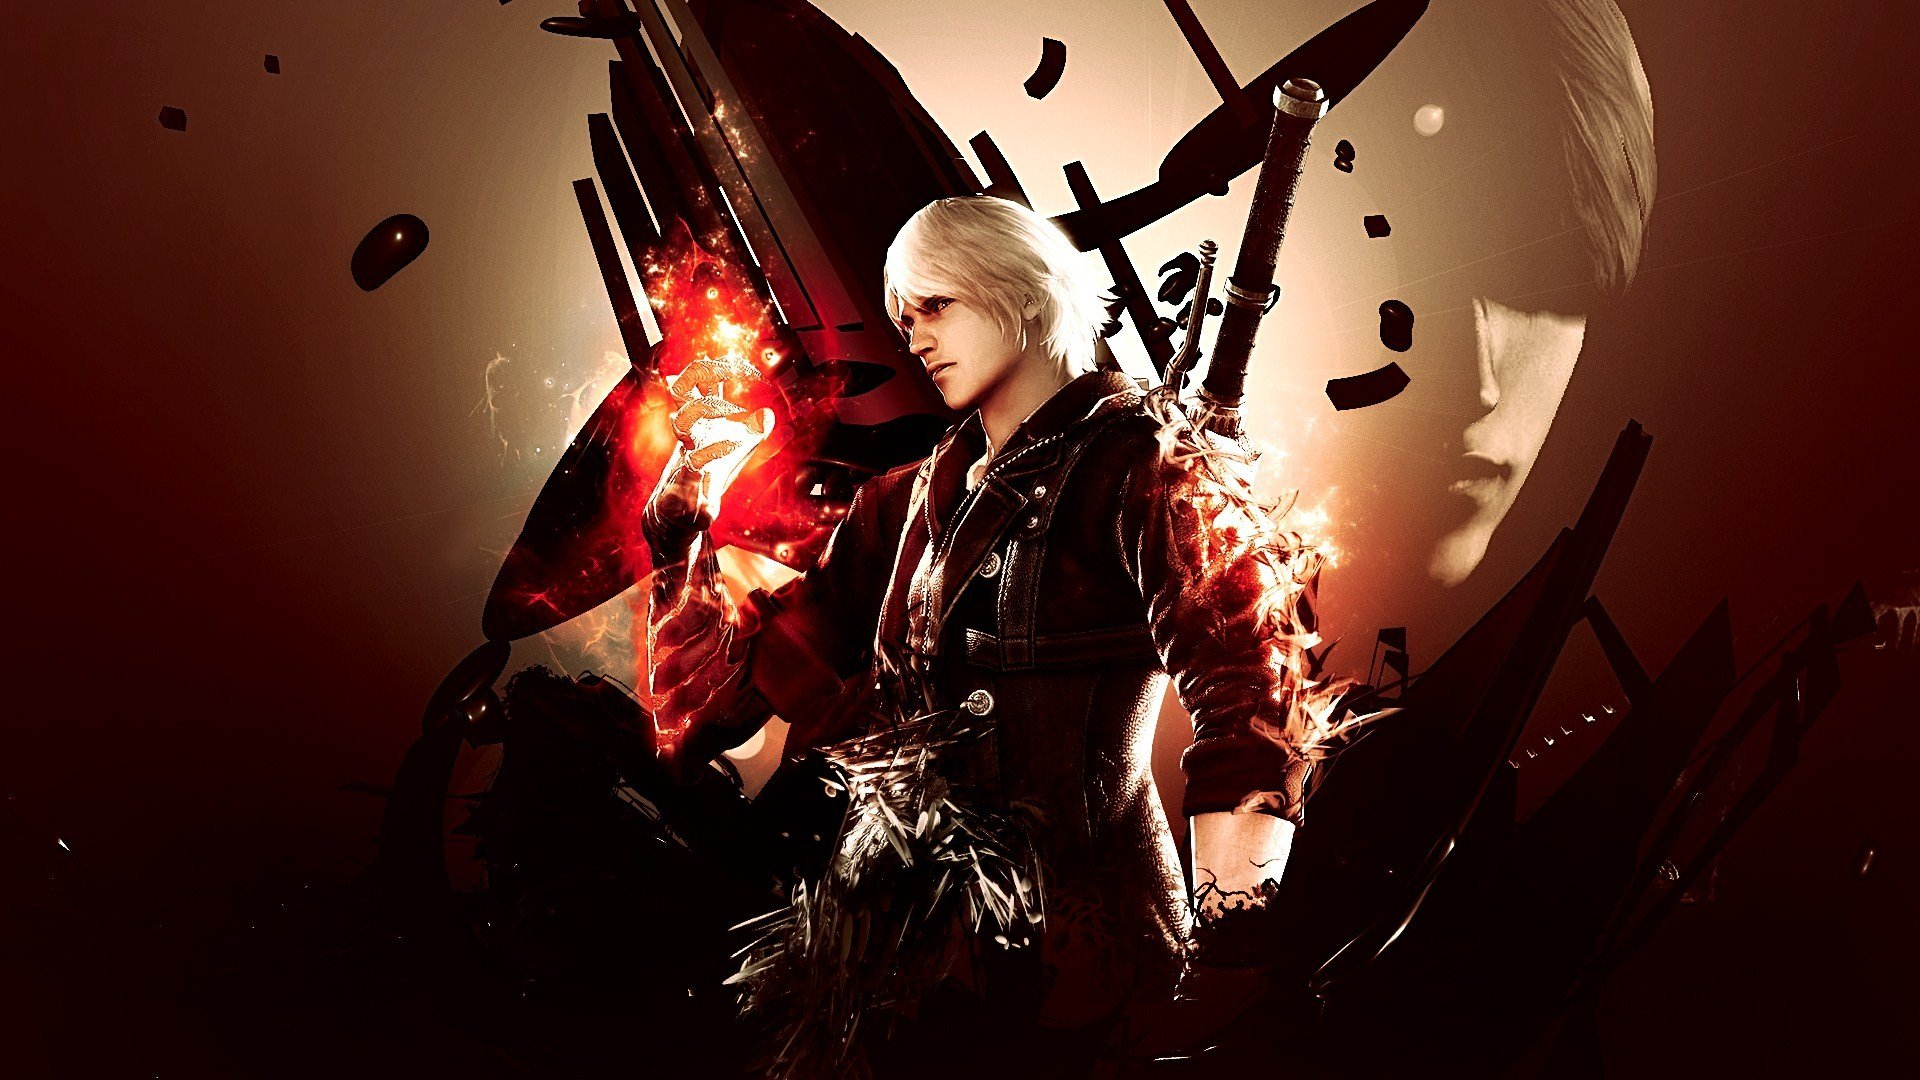 devil may cry 5 wallpaper wallpapers 32357 1920x1080jpg 1920x1080